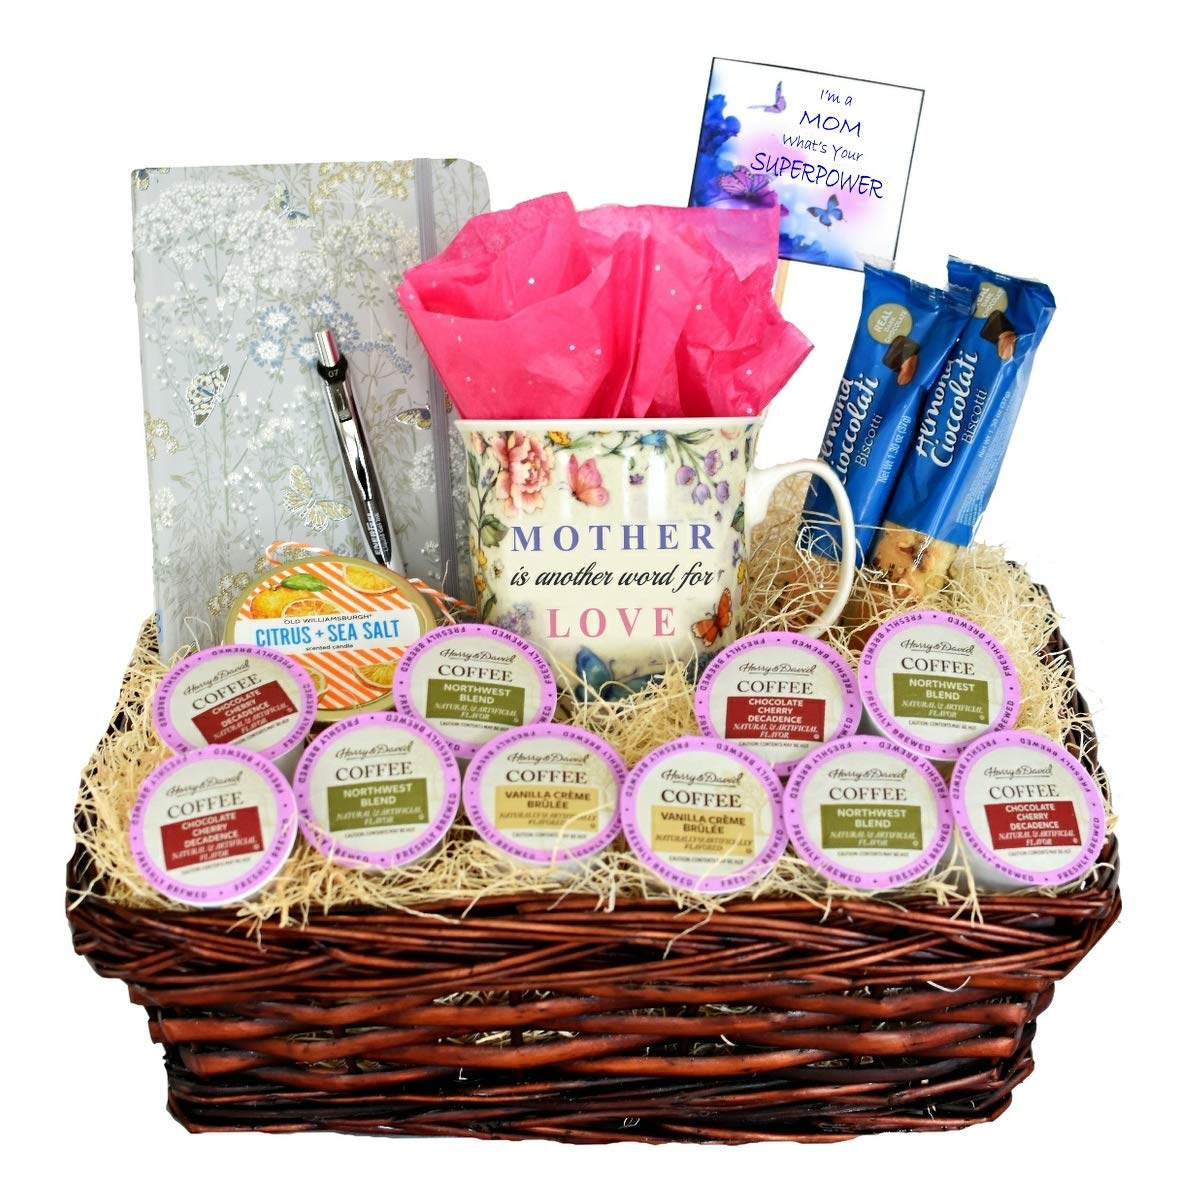 Amazon.com : Harry & David Gourmet K Cup Coffee Pod Gift Basket For Mom - Includes Hardcover Journal & Gel Pen, Porcelain Mug, Scented Candle & Biscotti - A ...